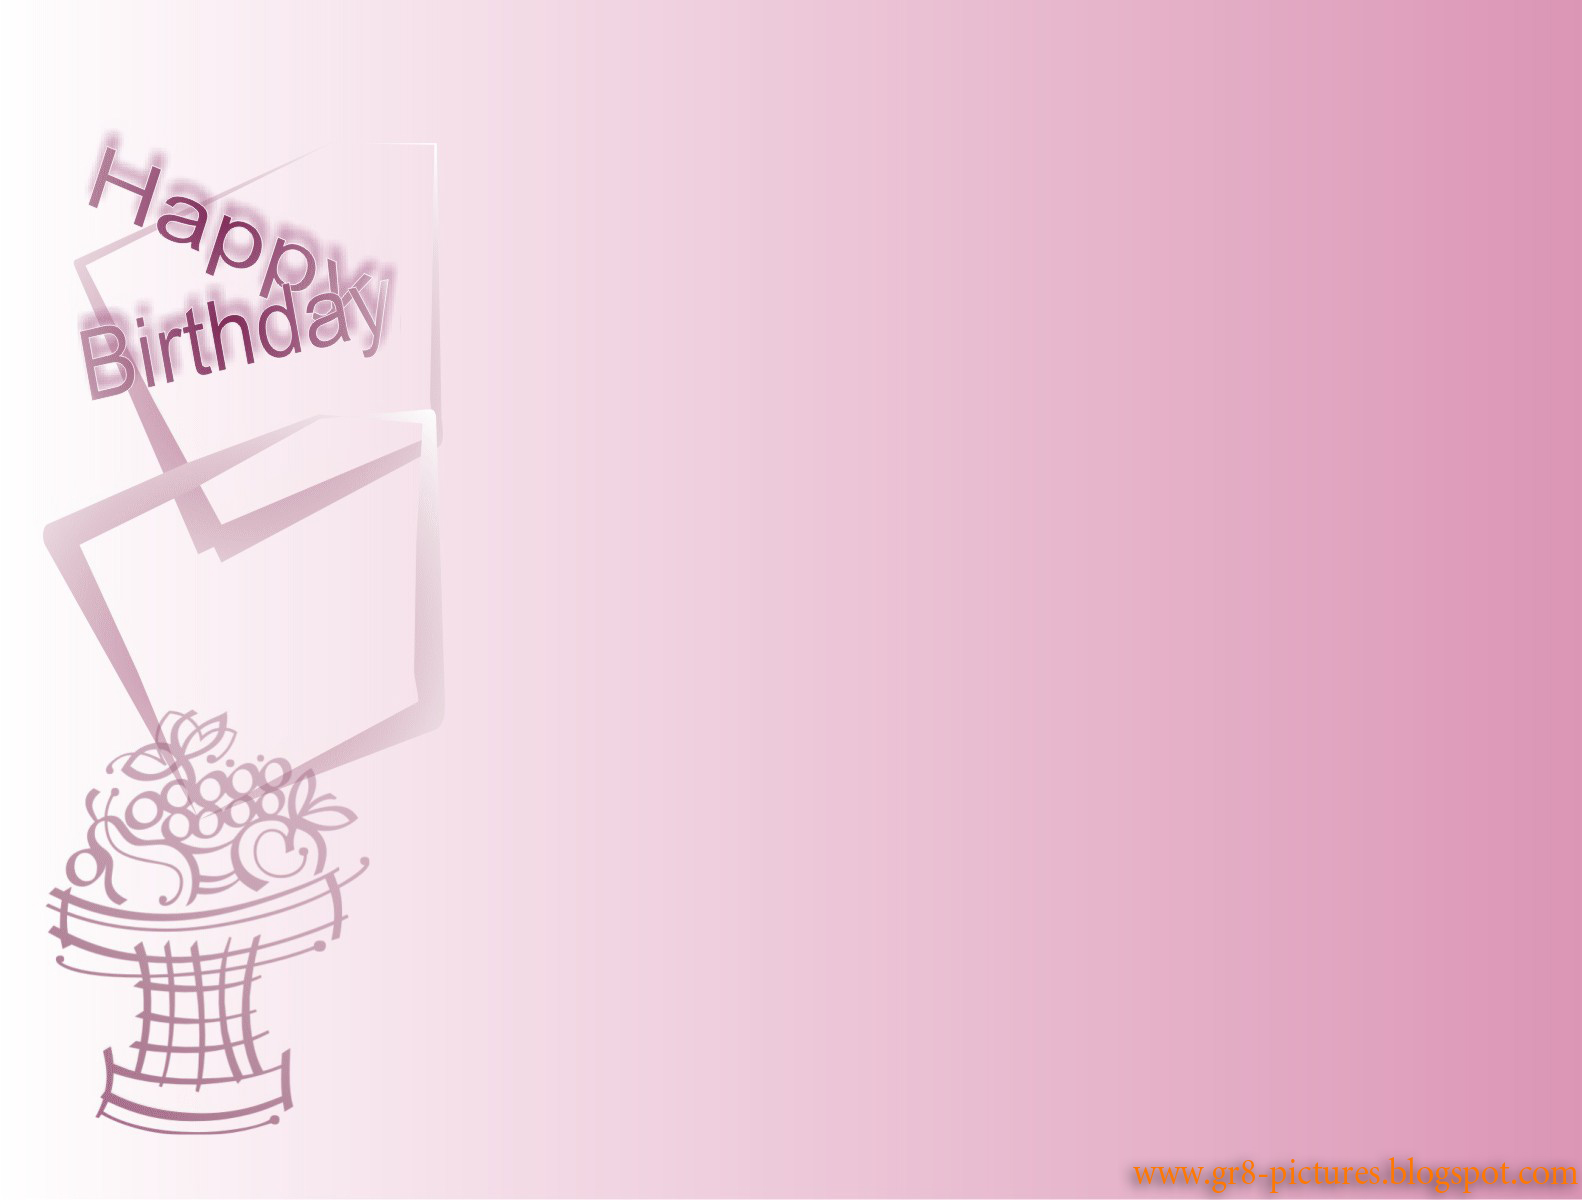 Hd Wallpapers Birthday Happy Birthday Wishes For On Wall